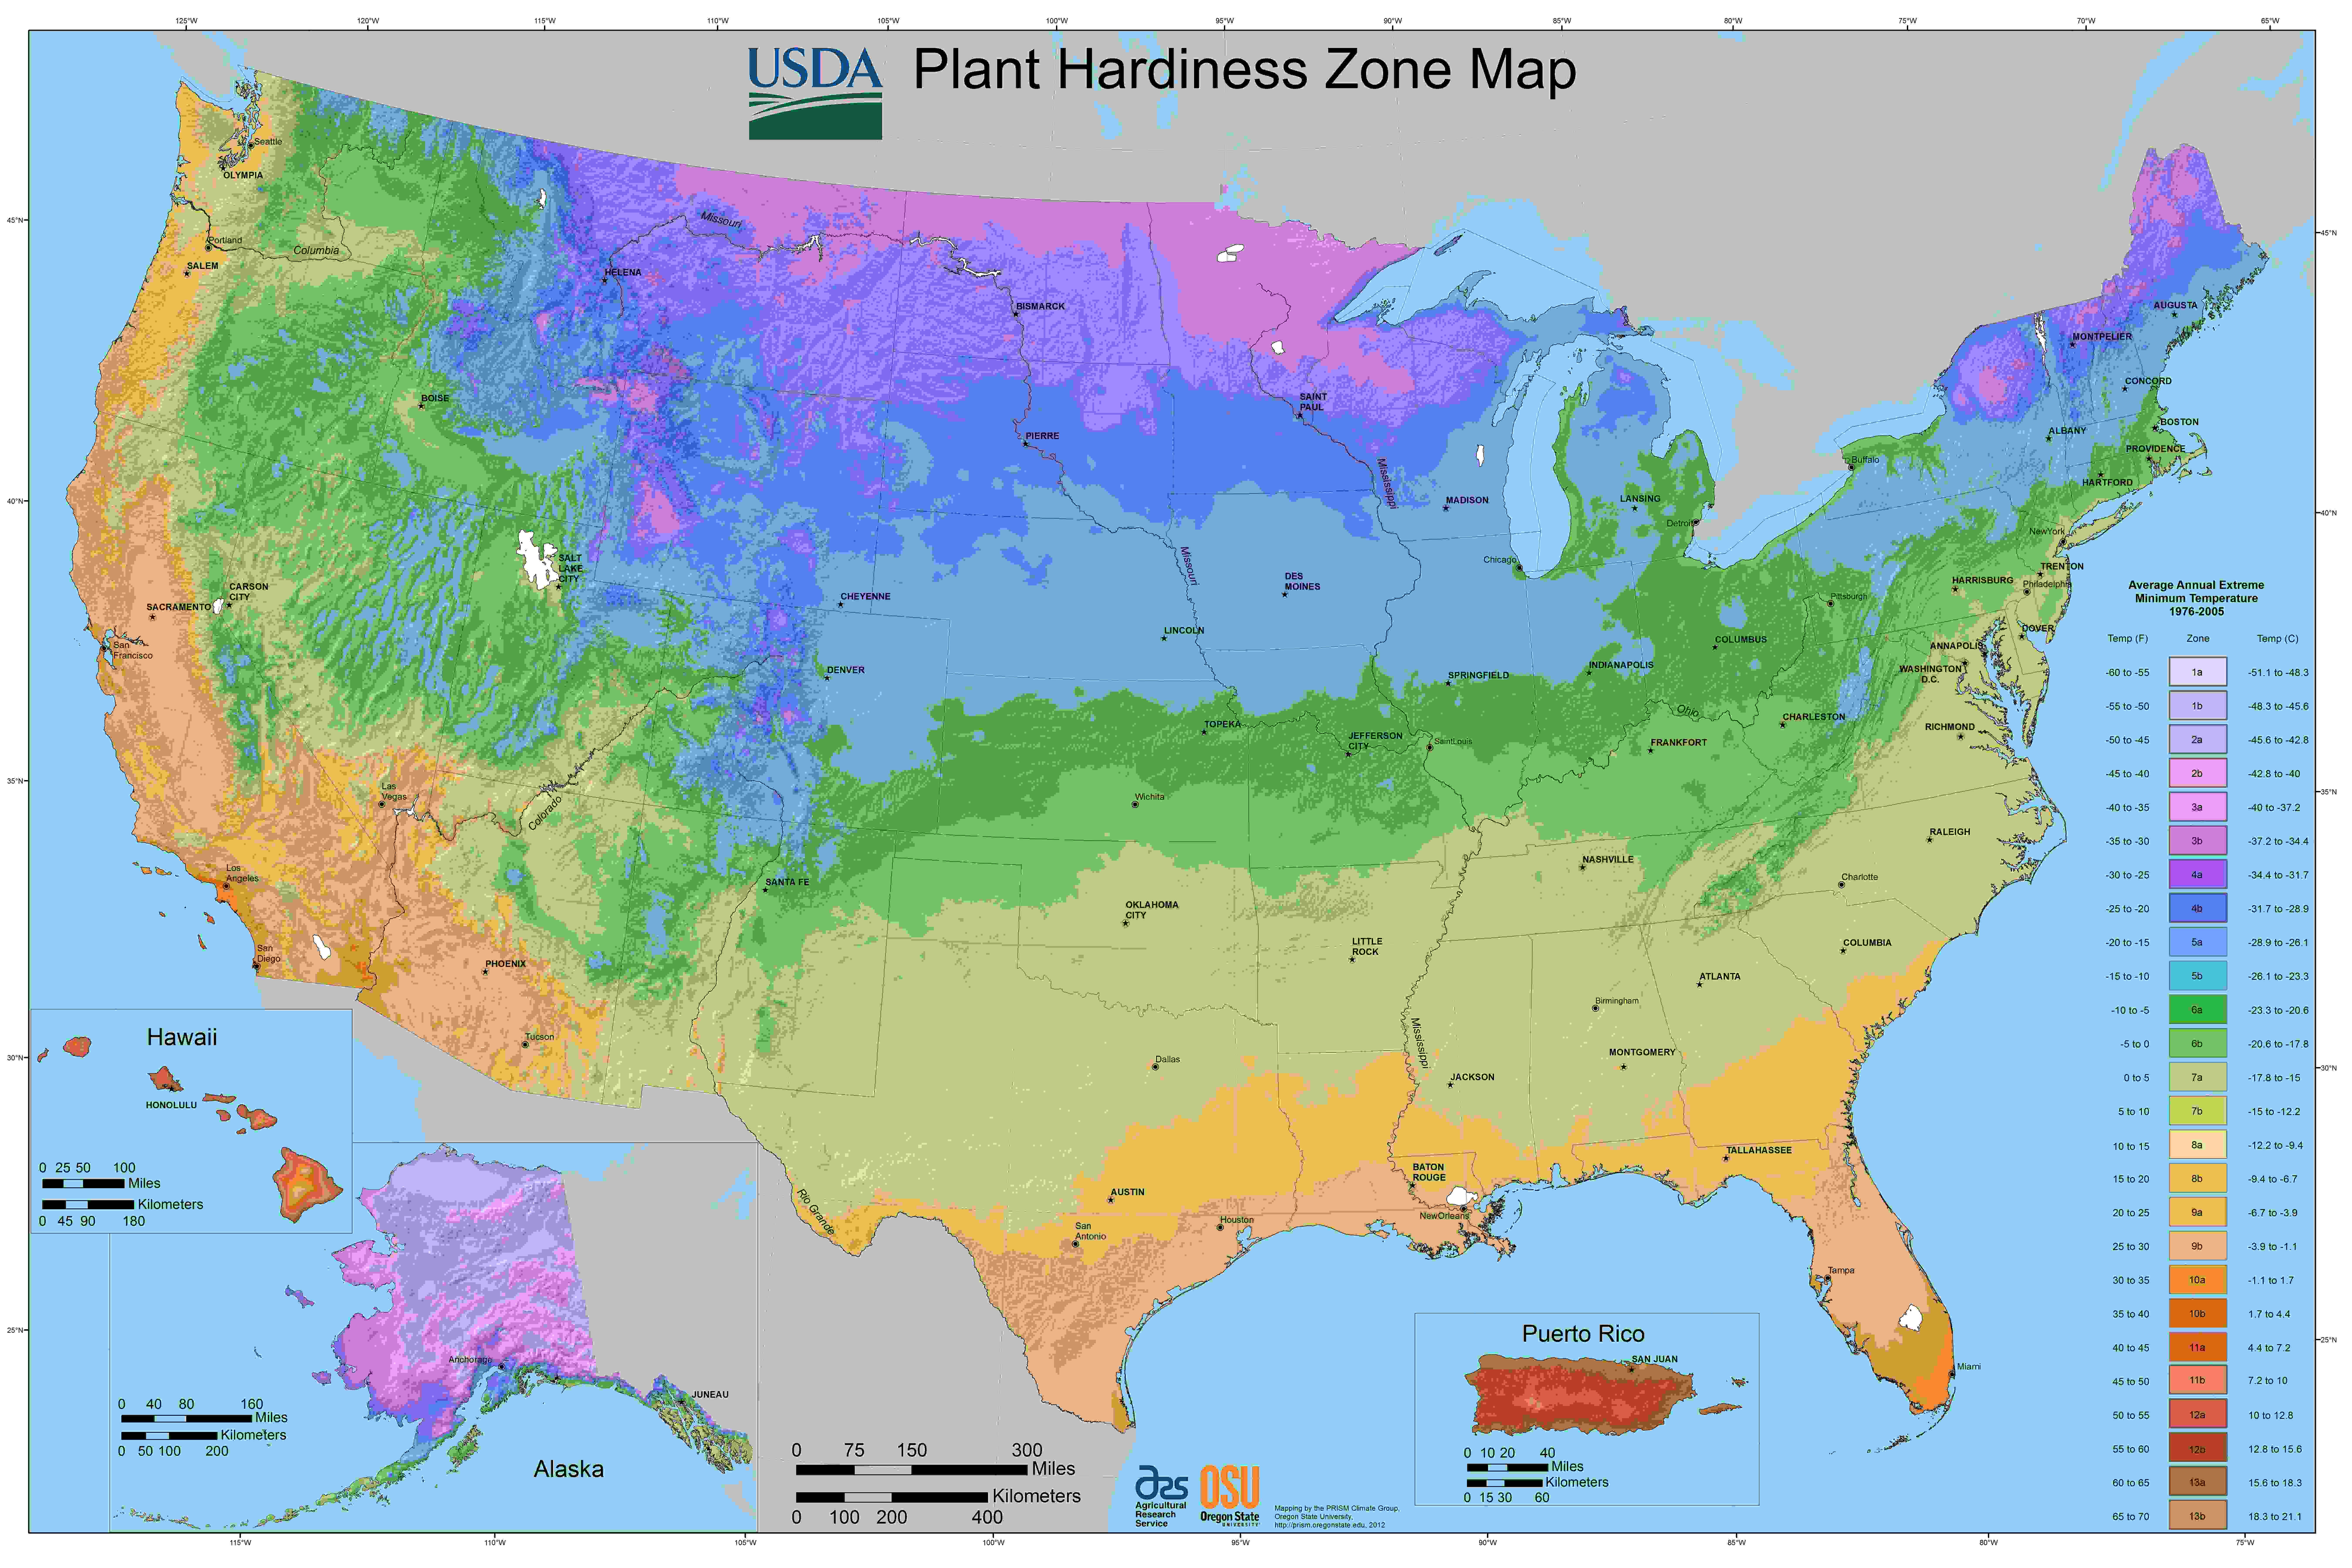 Check plant hardiness zones warming has led to changes